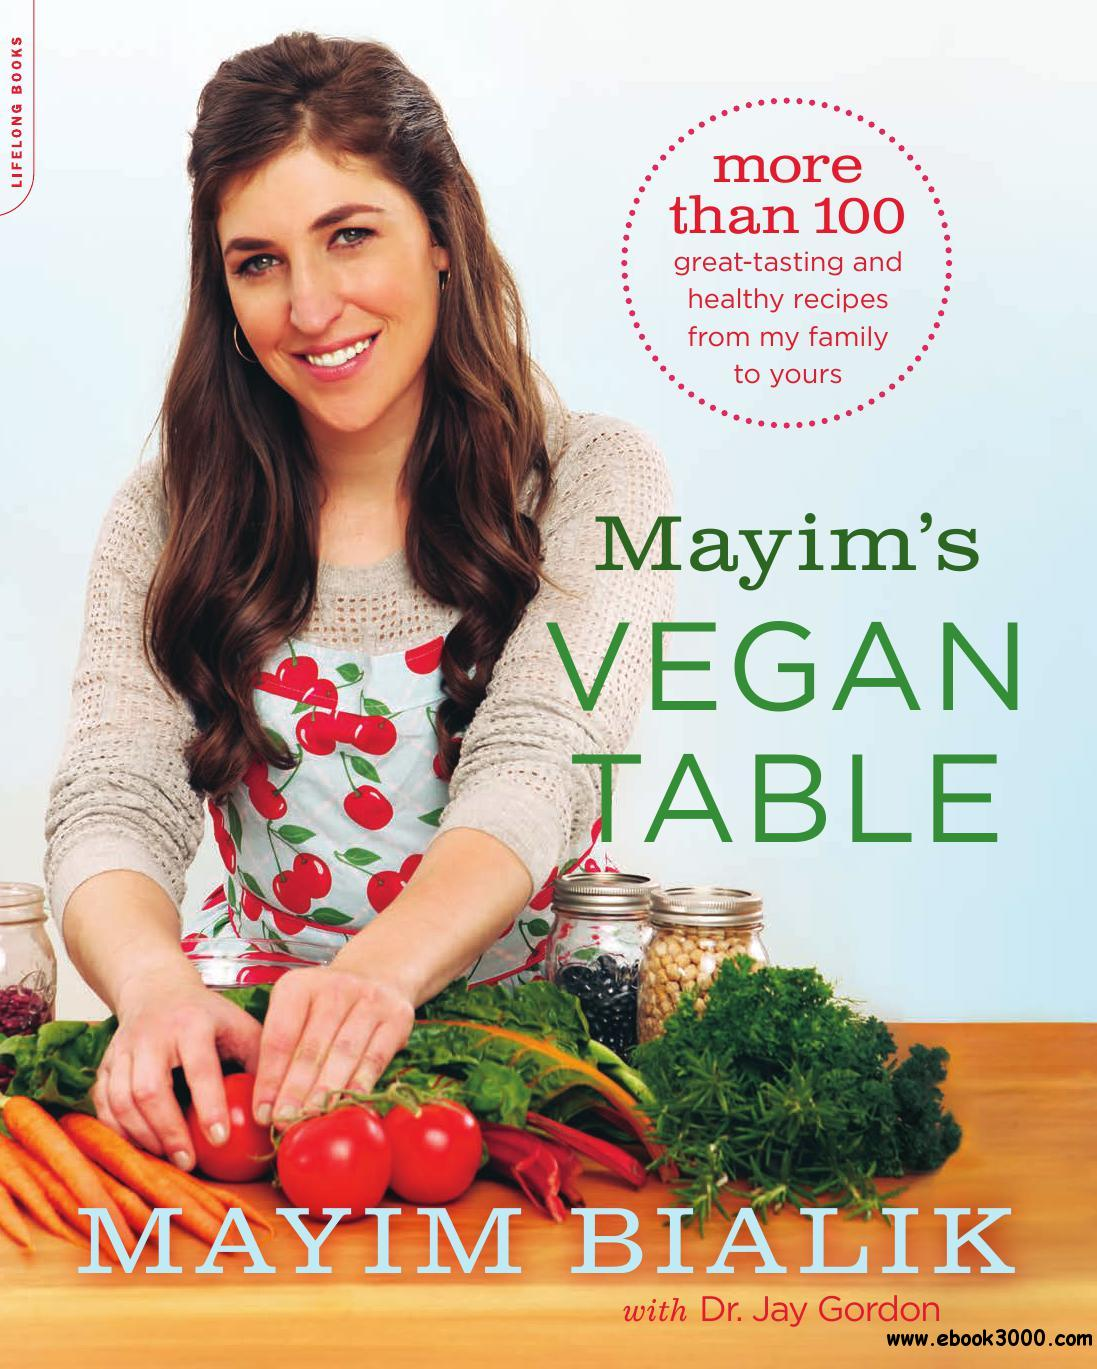 Mayim's Vegan Table: More than 100 Great-Tasting and Healthy Recipes from My Family to Your free download